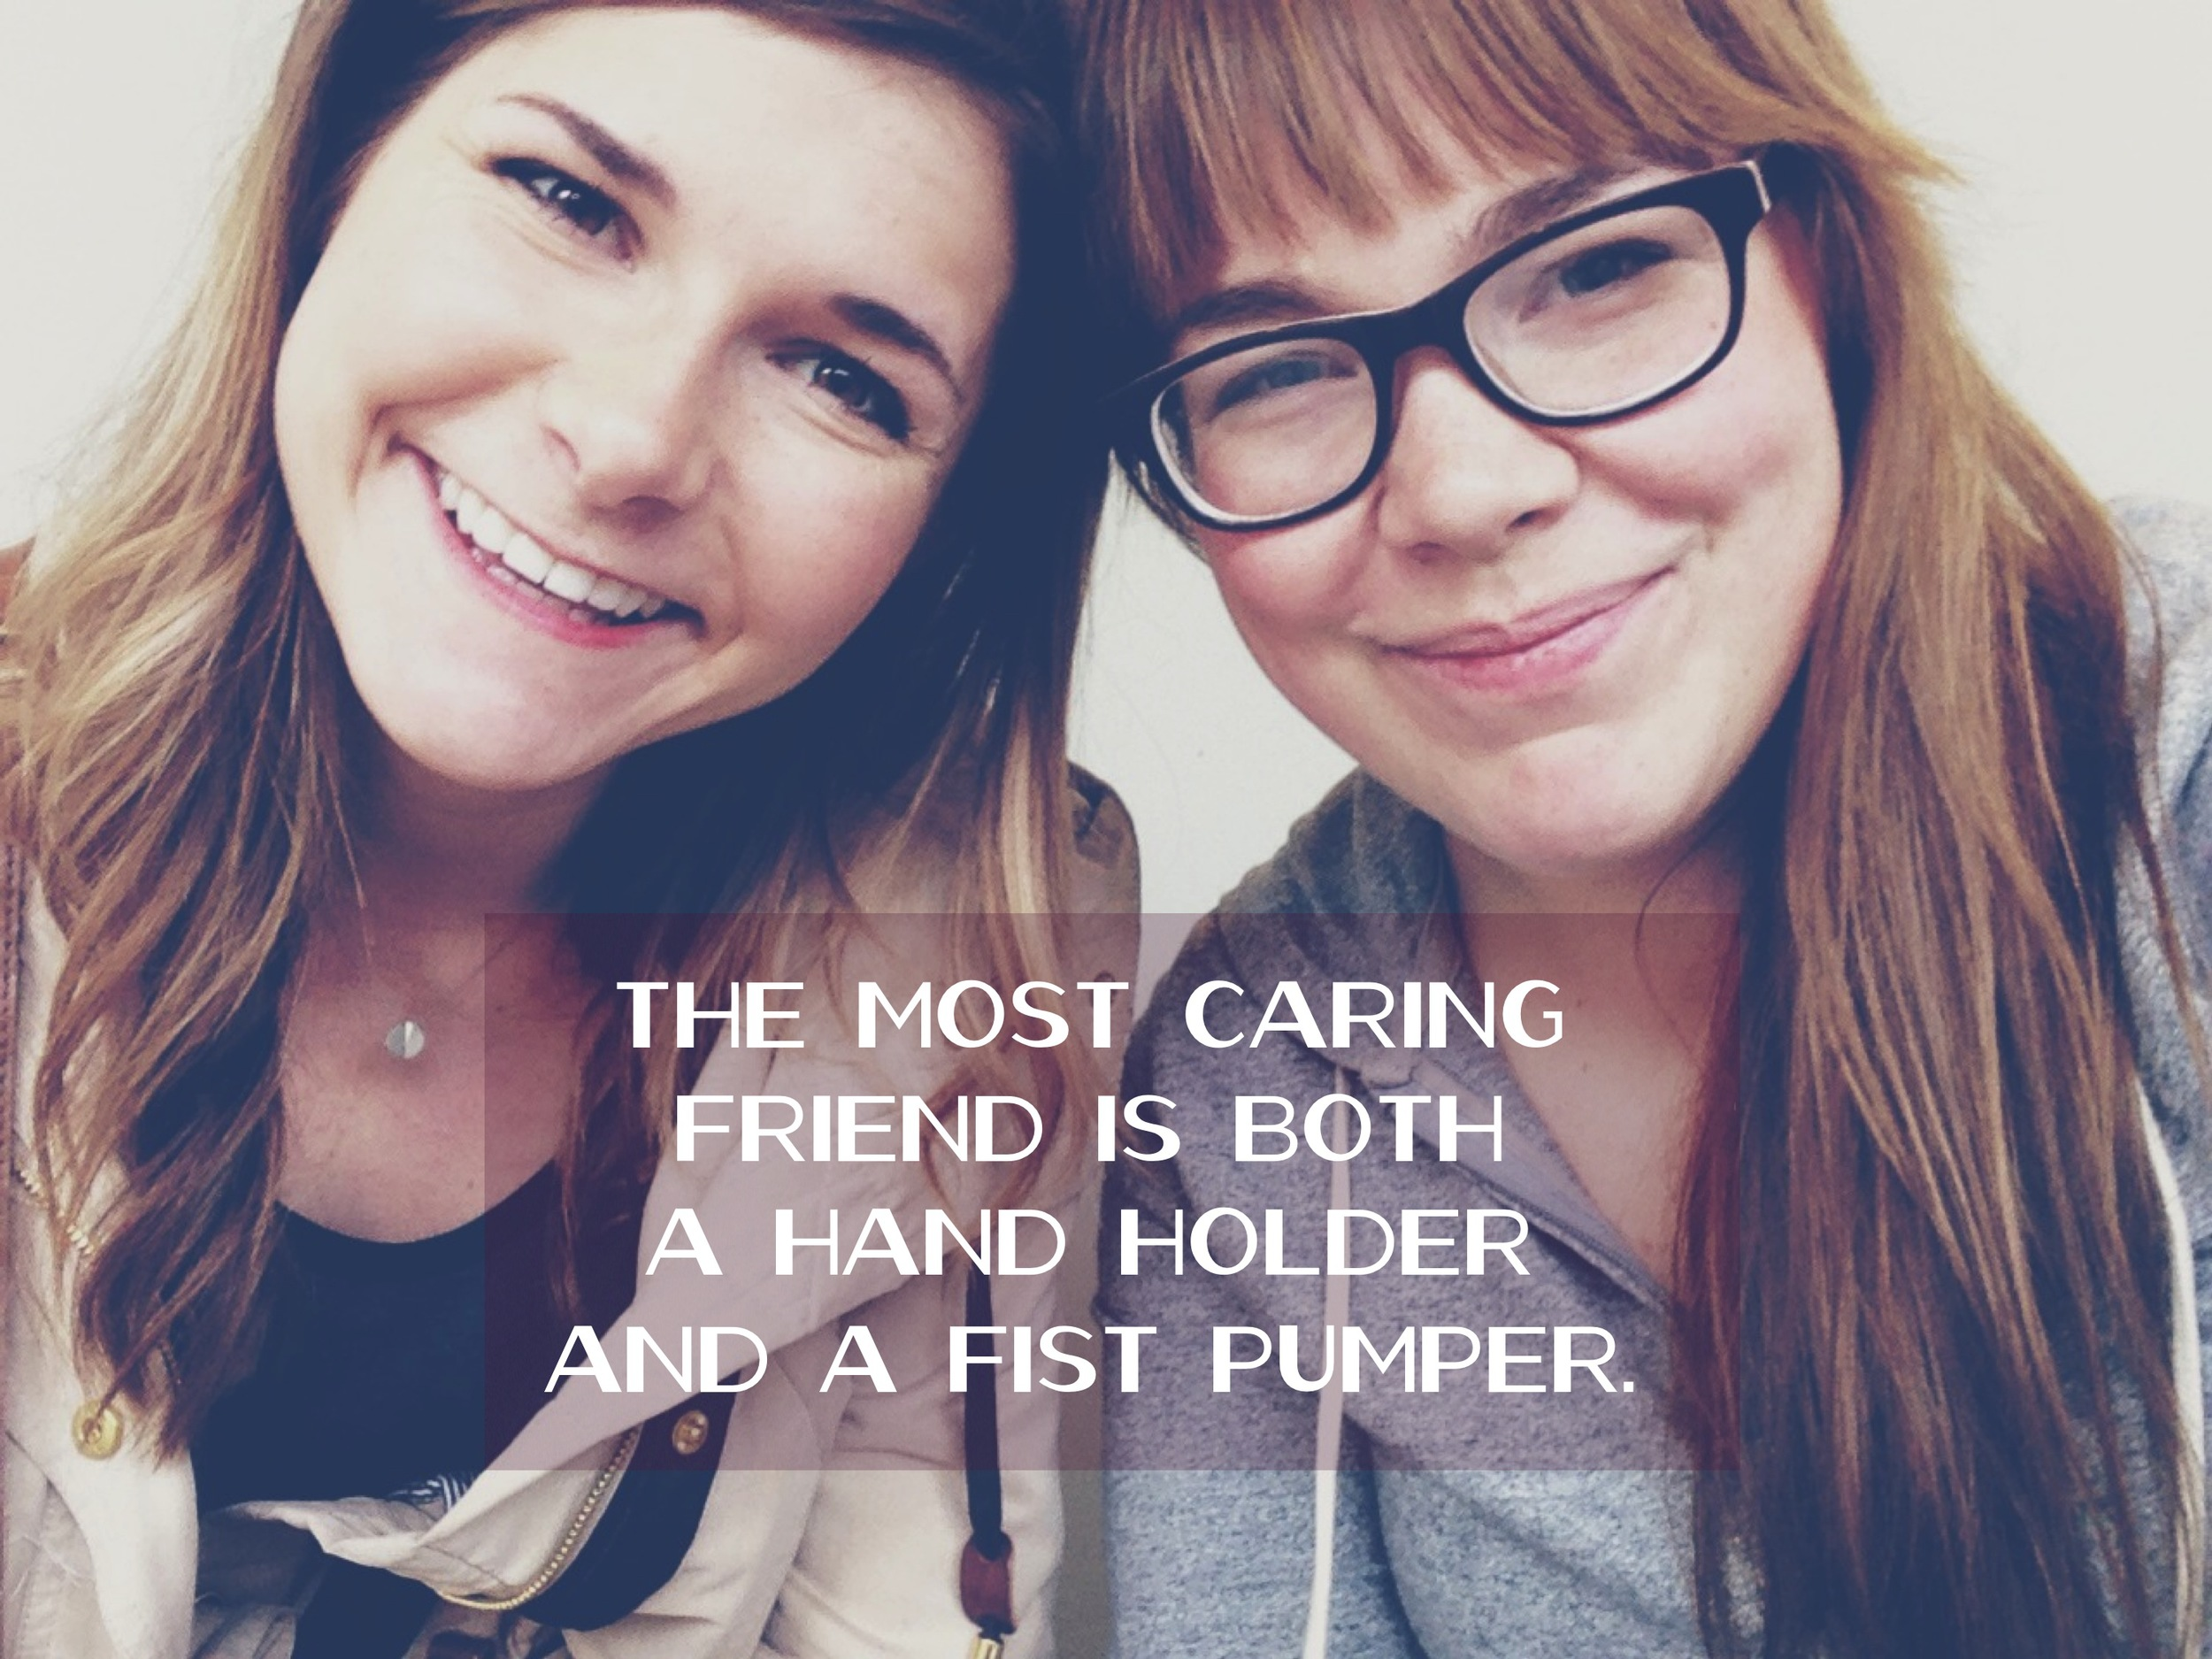 The most care friend holds your hand and fist pumps too nadinewouldsay